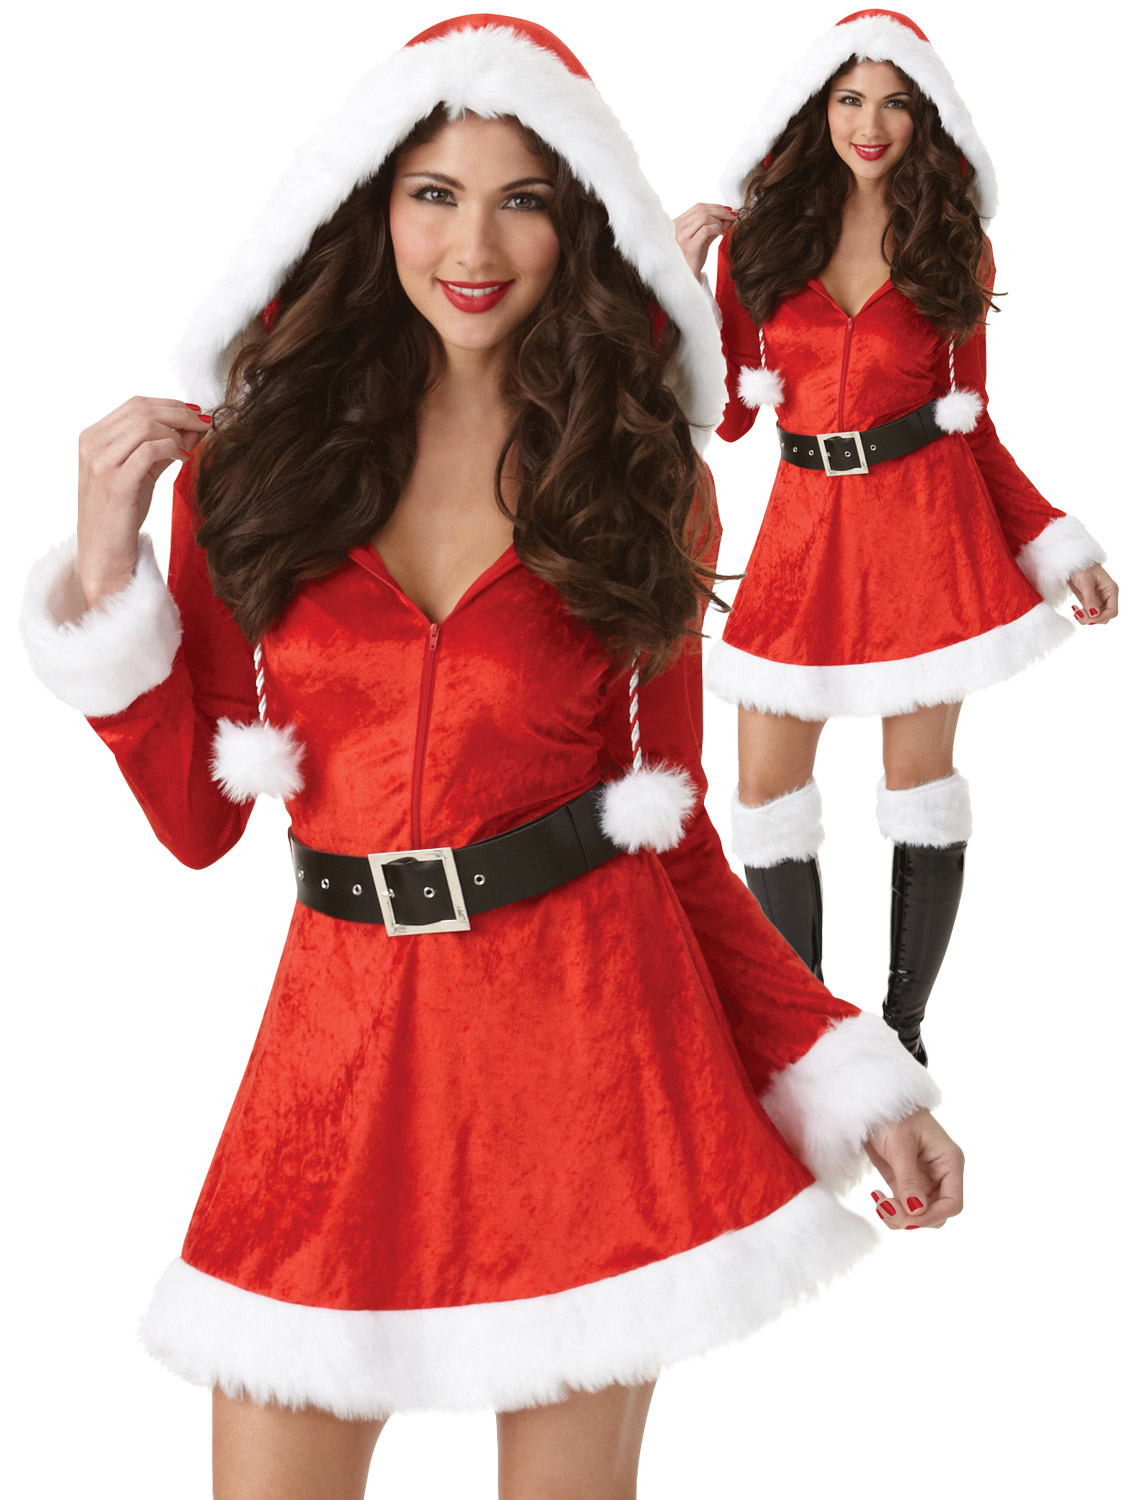 Ladies santa costume sexy adult mrs father christmas fancy dress transform yourself in to a sexy mrs claus with this ladies sassy santa costume ideal if you are dressing up for a christmas party solutioingenieria Images